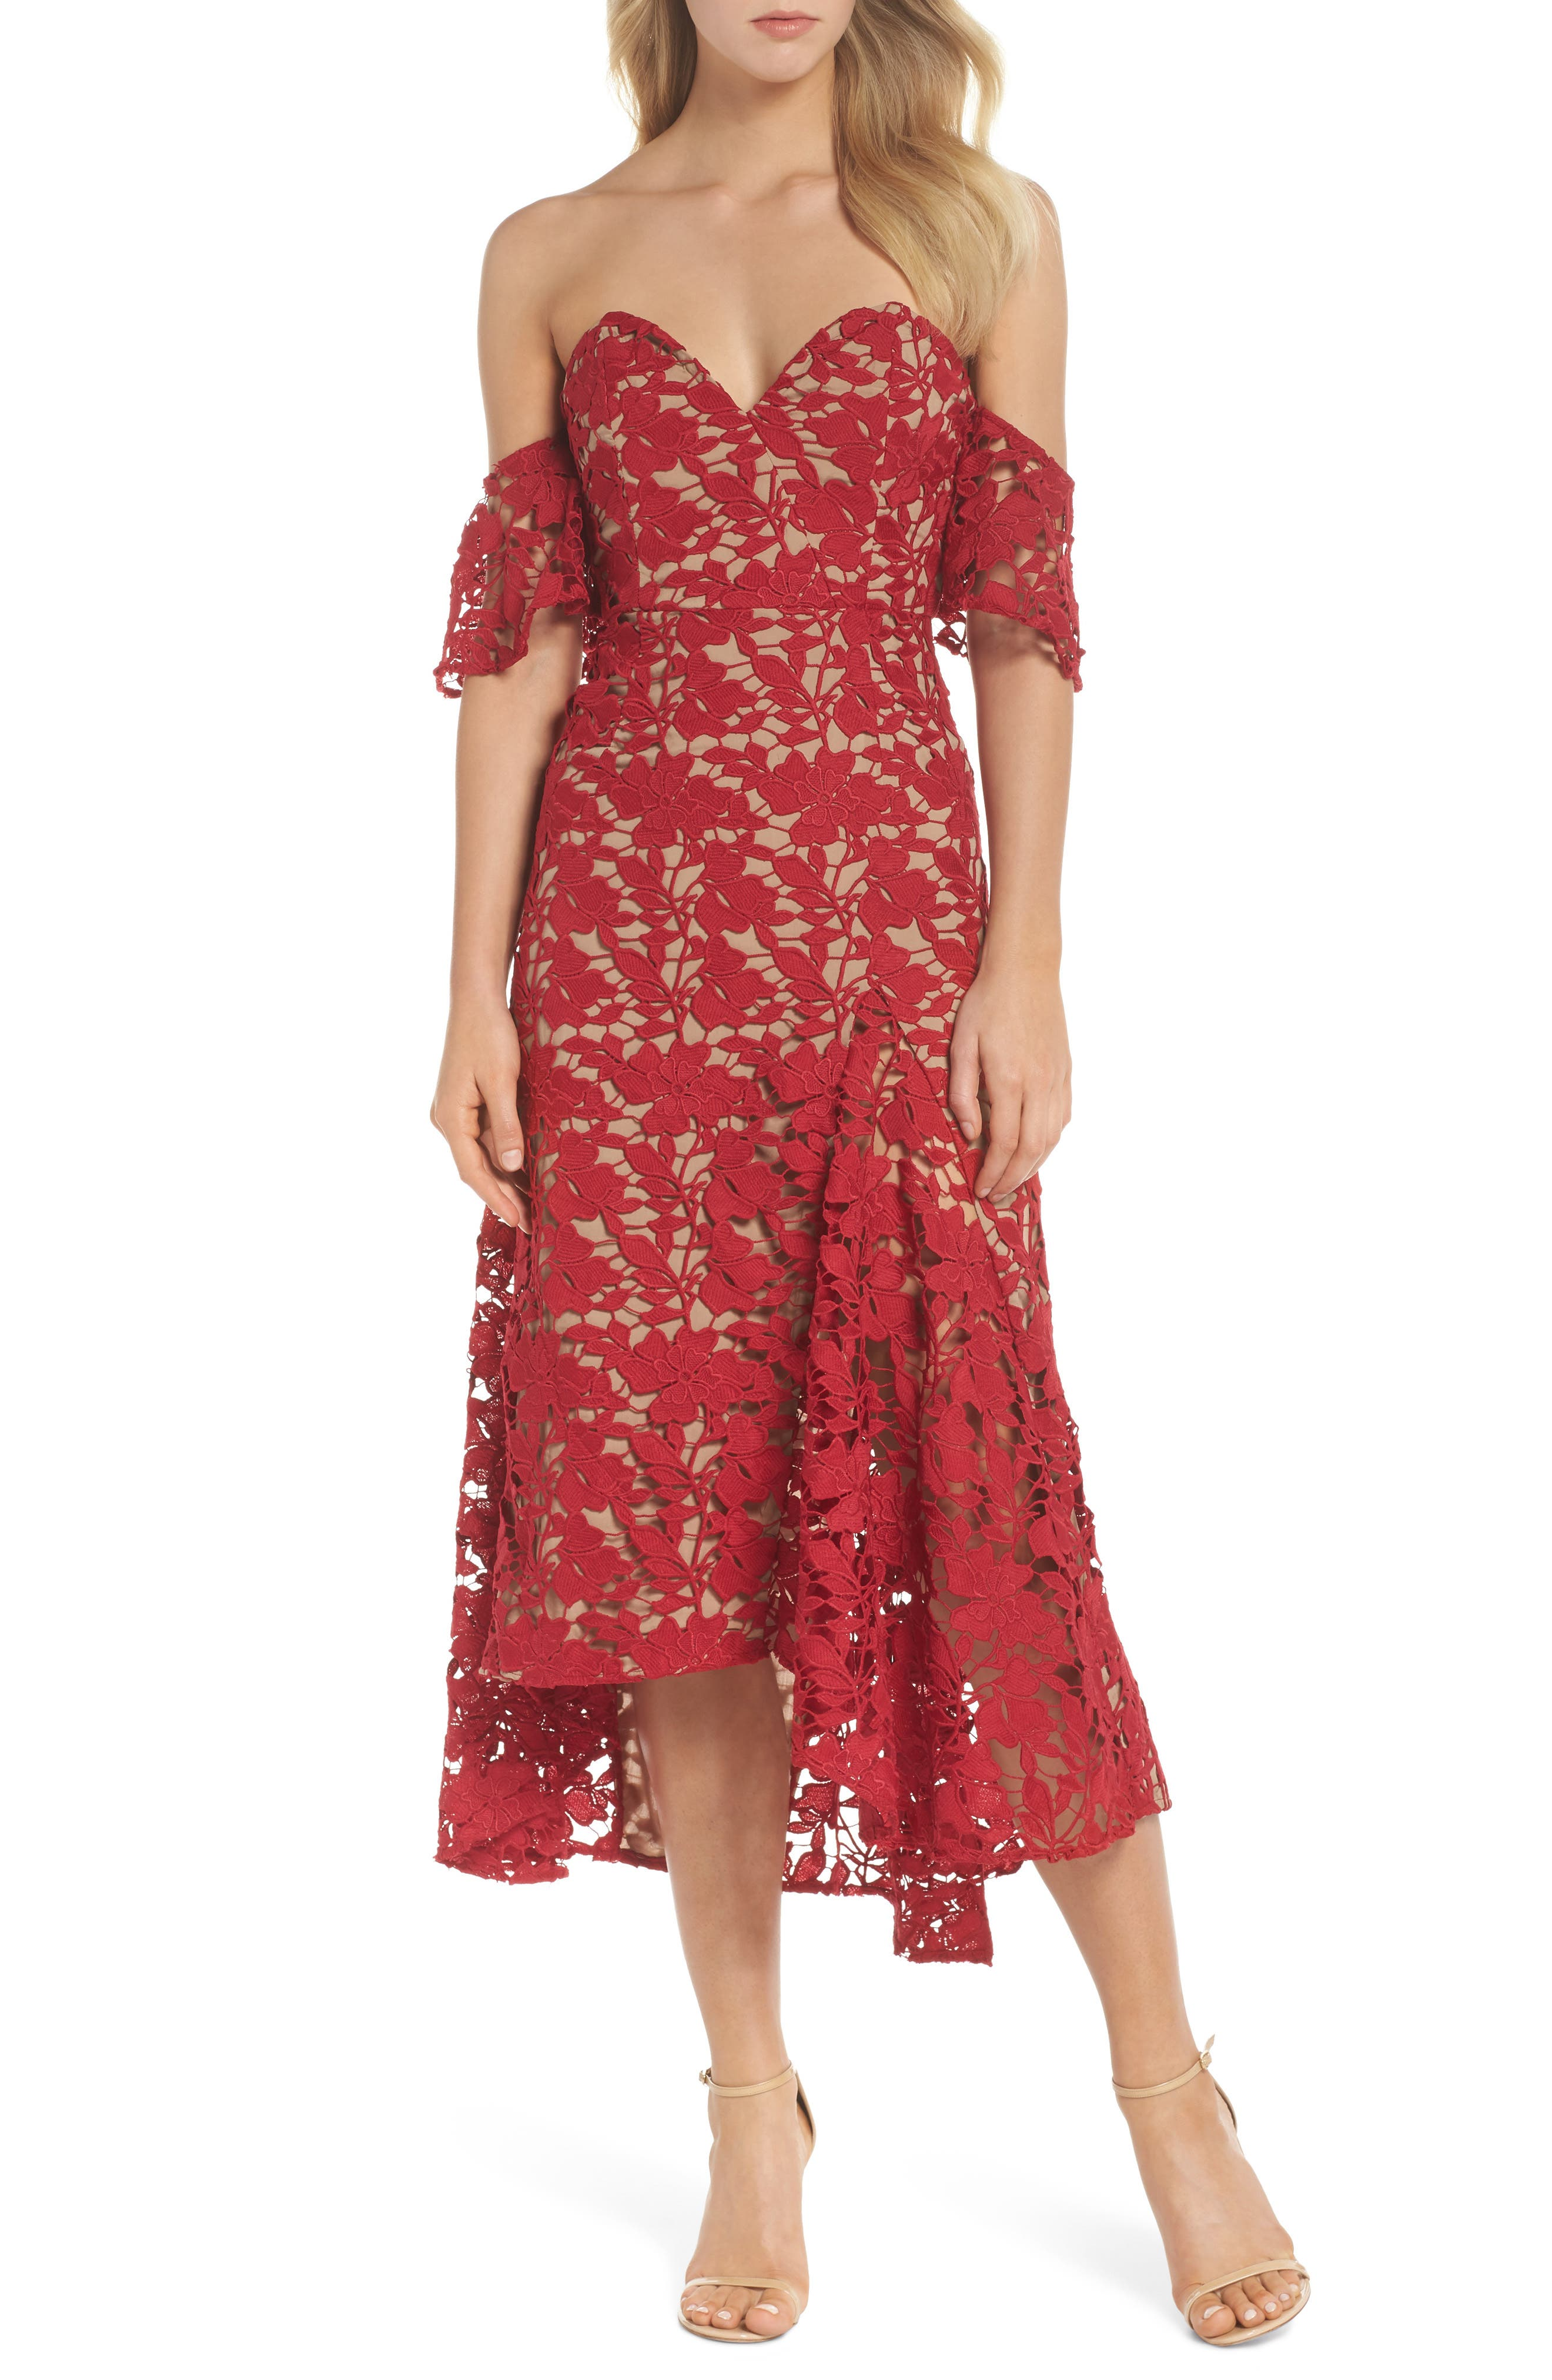 Scarlett Off the Shoulder Lace Dress,                             Main thumbnail 1, color,                             RED